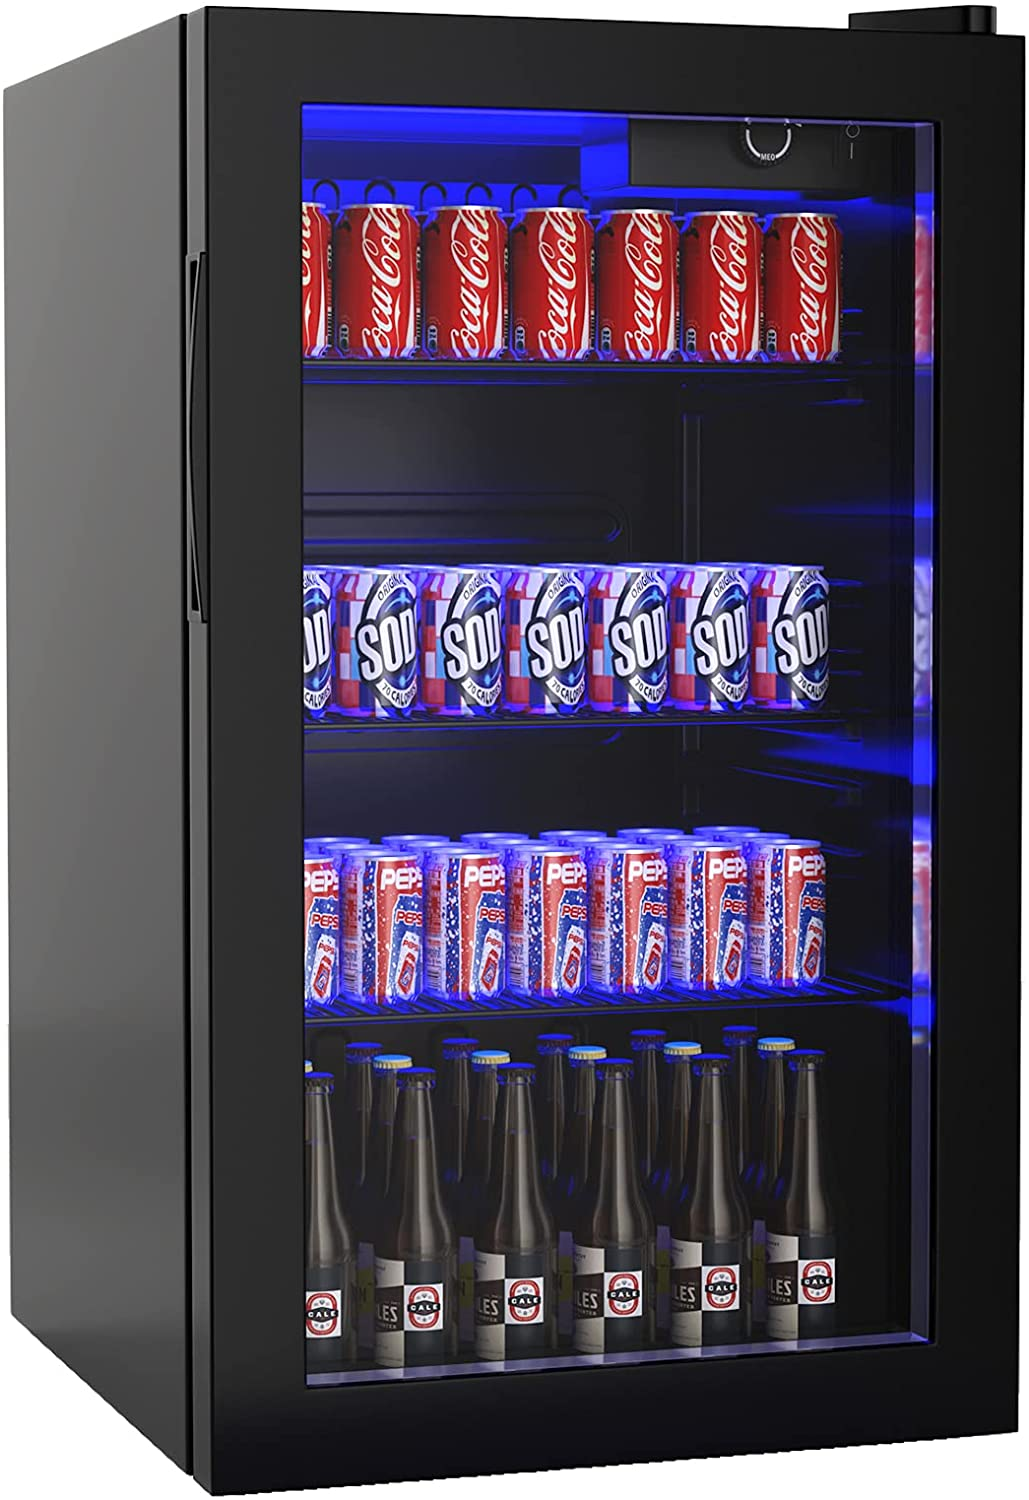 ARLIME Beverage Refrigerator 120 Can Mini Fridge Cooler with Glass Door, Small Drink Dispenser Machine for Office Bar or Home with Adjustable Removable Shelves, 3.2cu.ft.